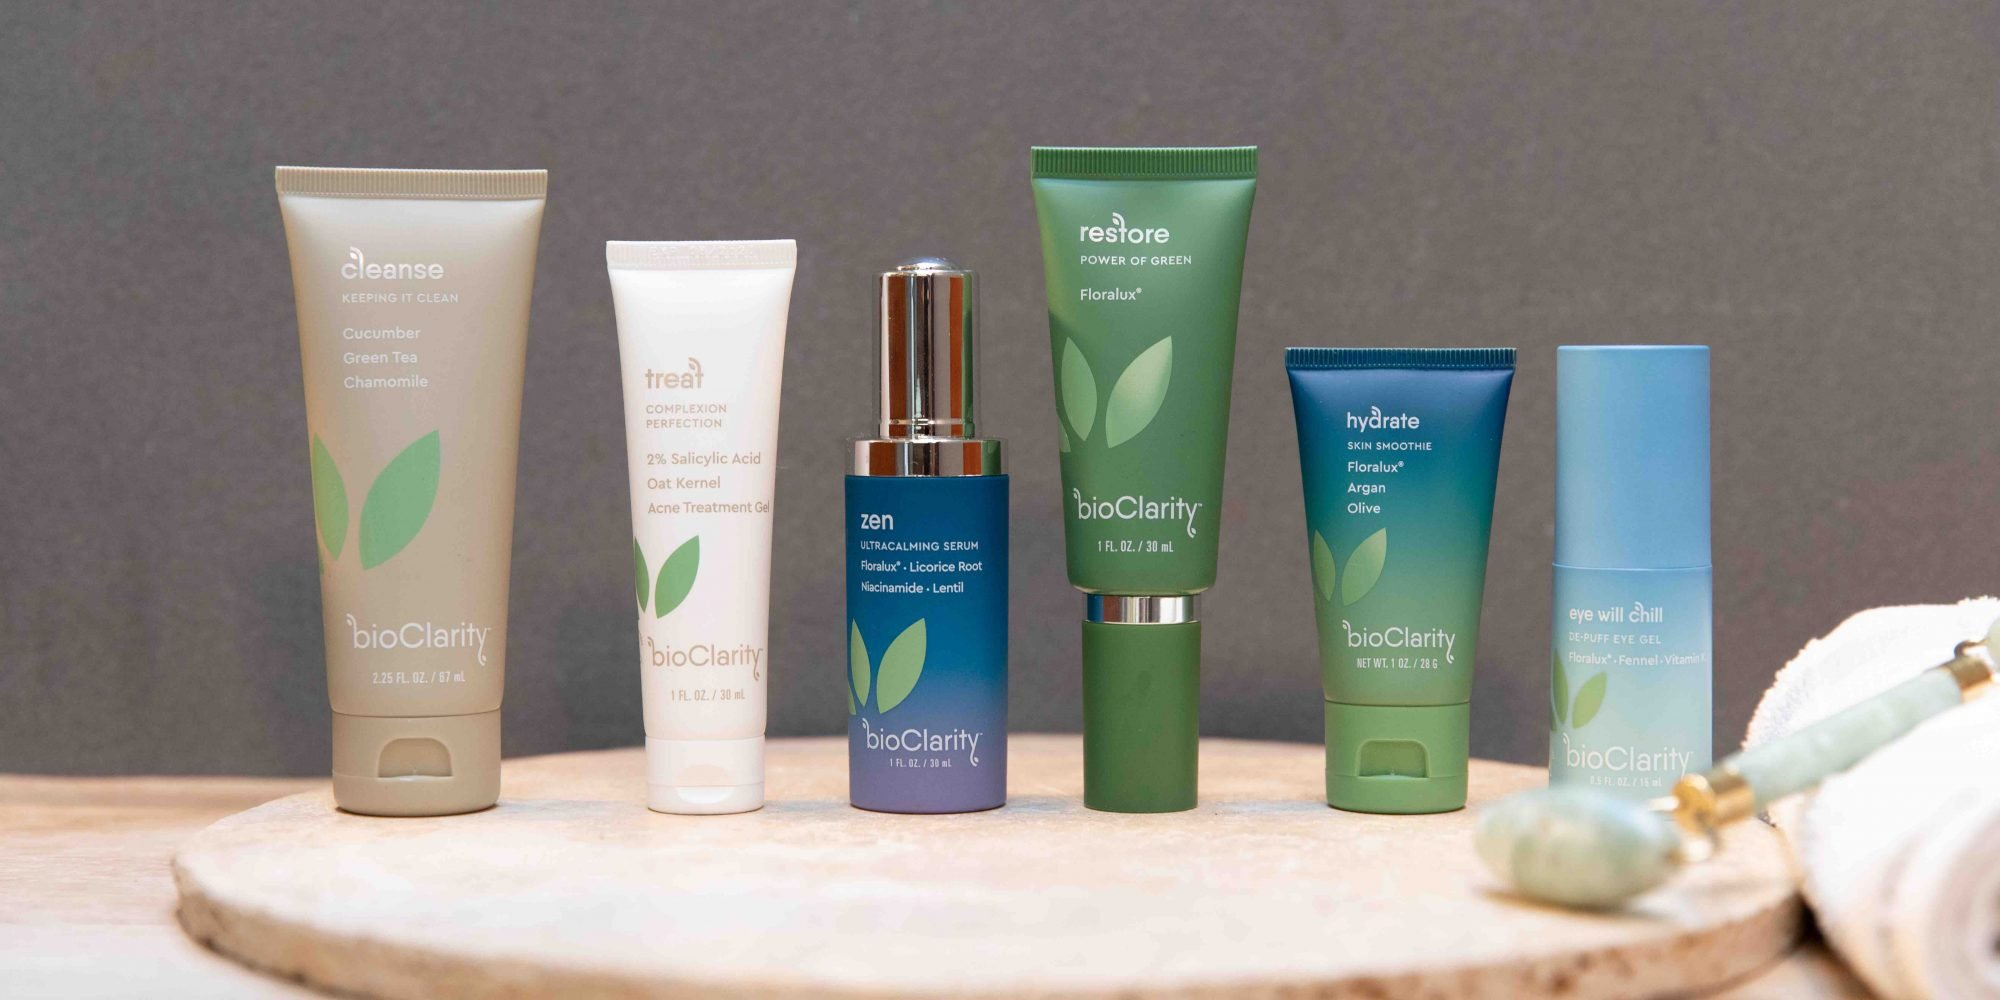 Better-For-You DTC Skincare Brand BioClarity Draws $13M To Fuel Product Development And Marketing